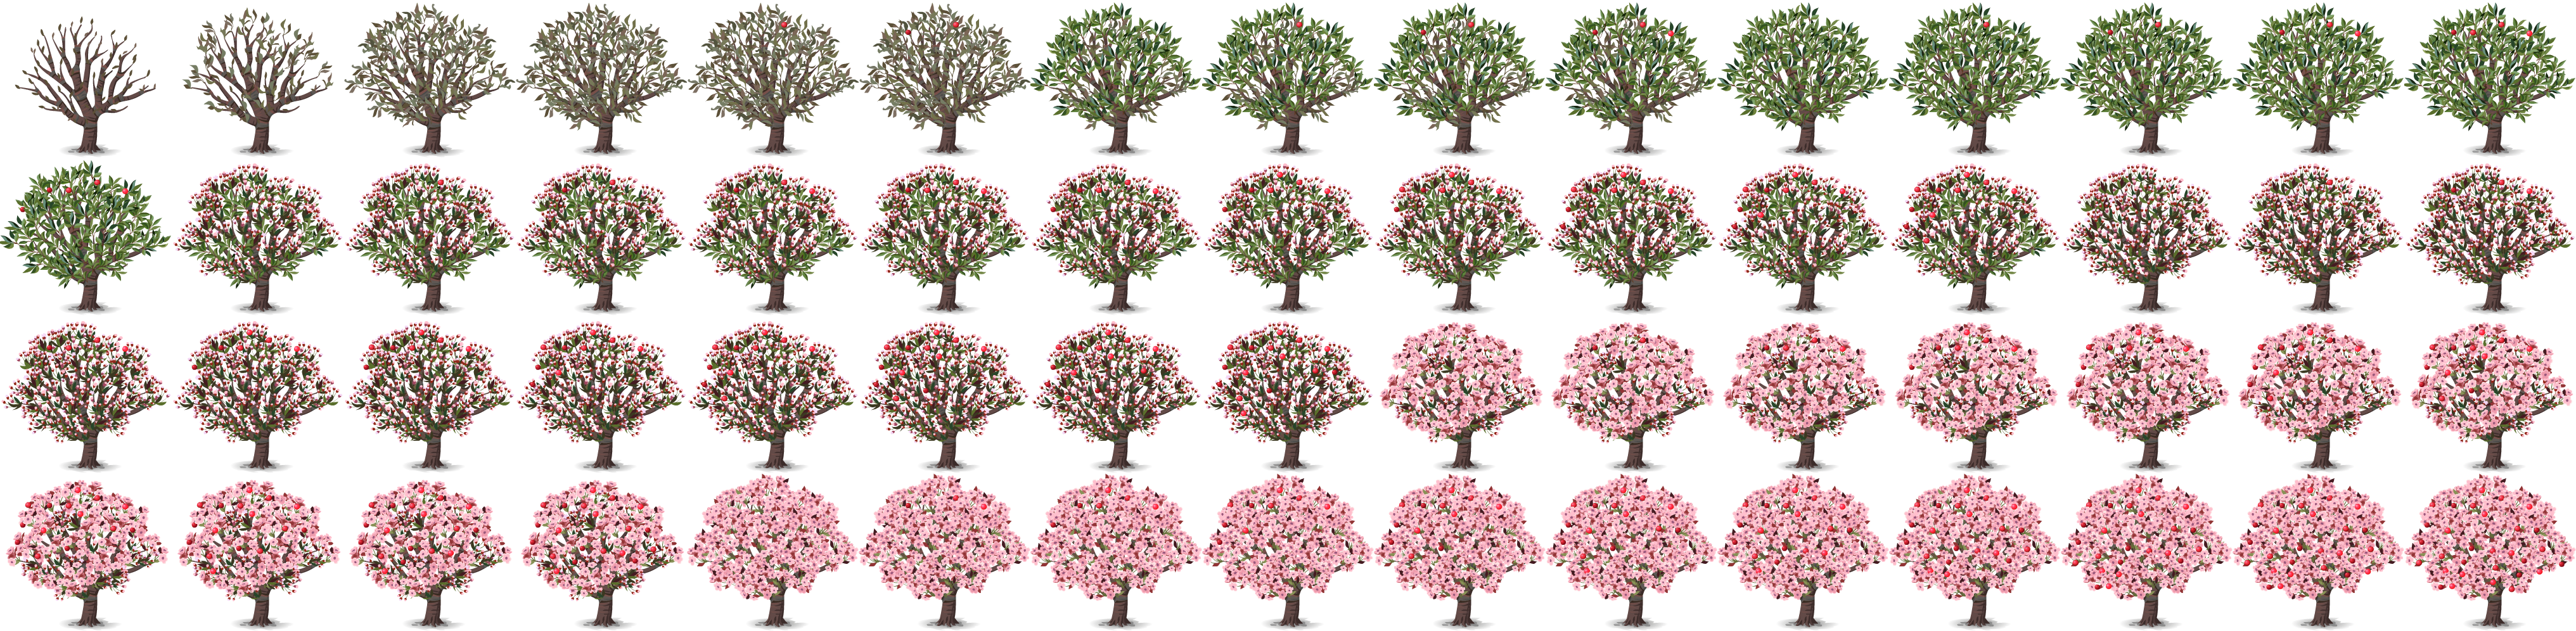 Fruit tree spritesheet